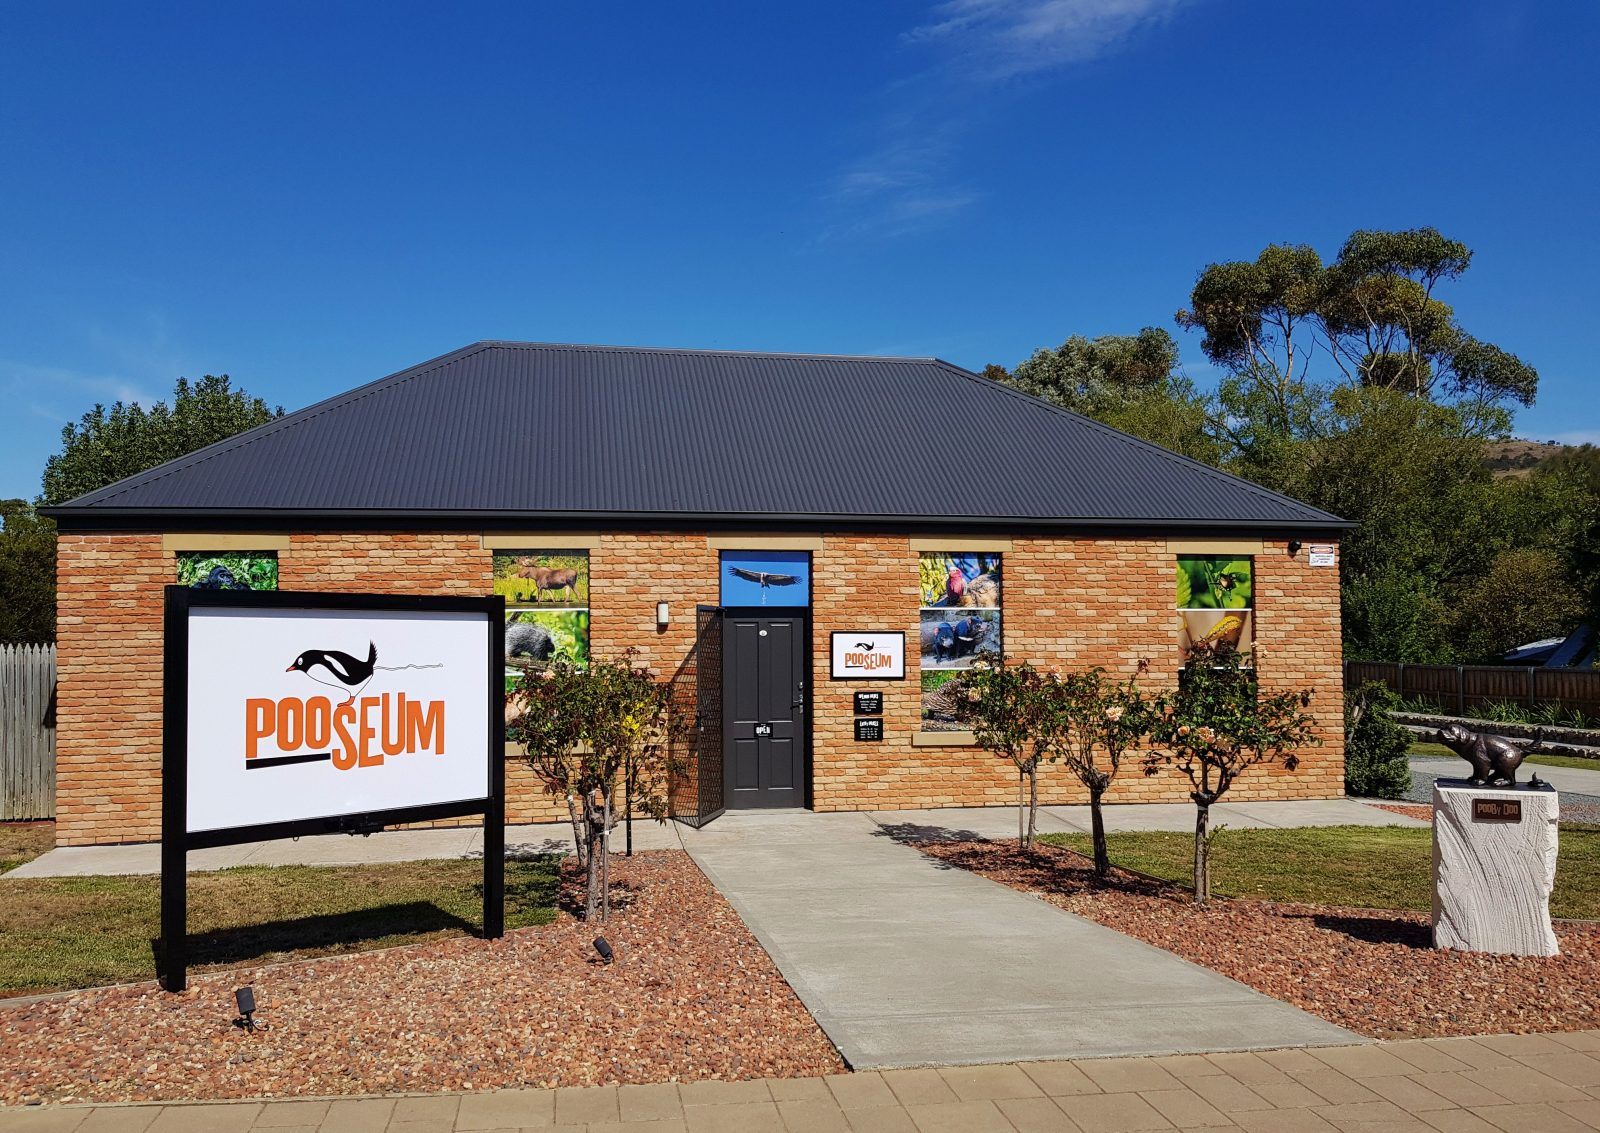 Pooseum, a new science museum about animal droppings in Richmond, Tasmania